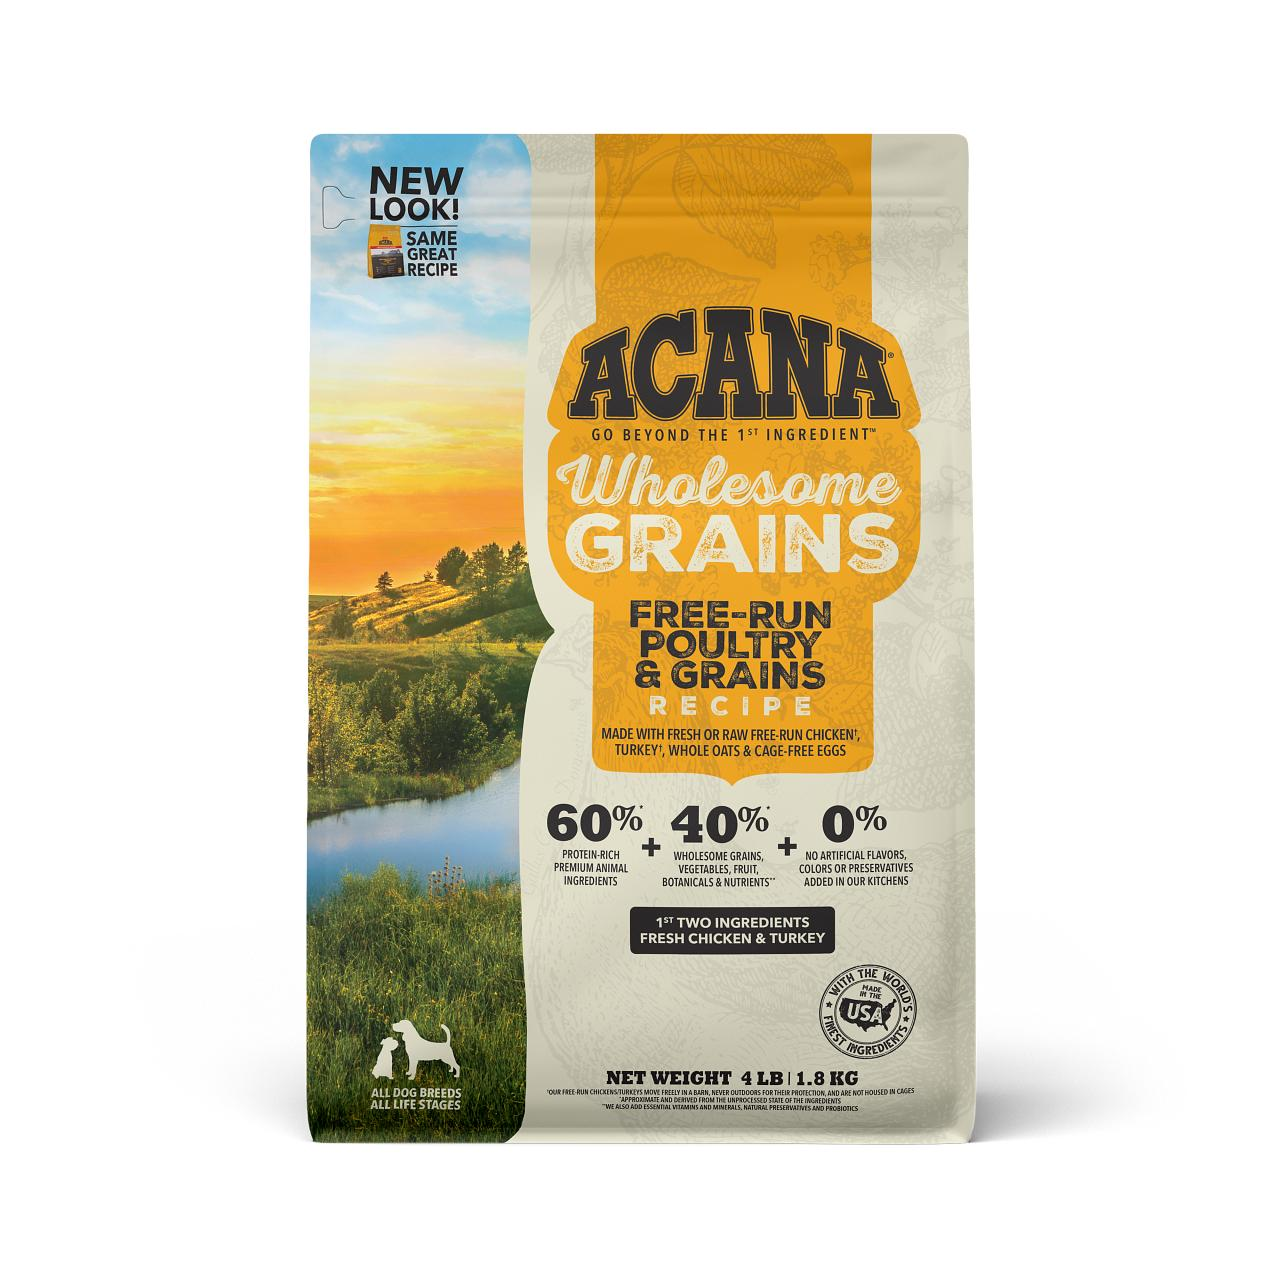 ACANA Wholesome Grains Free-Run Poultry & Grains Dry Dog Food, 4-lb